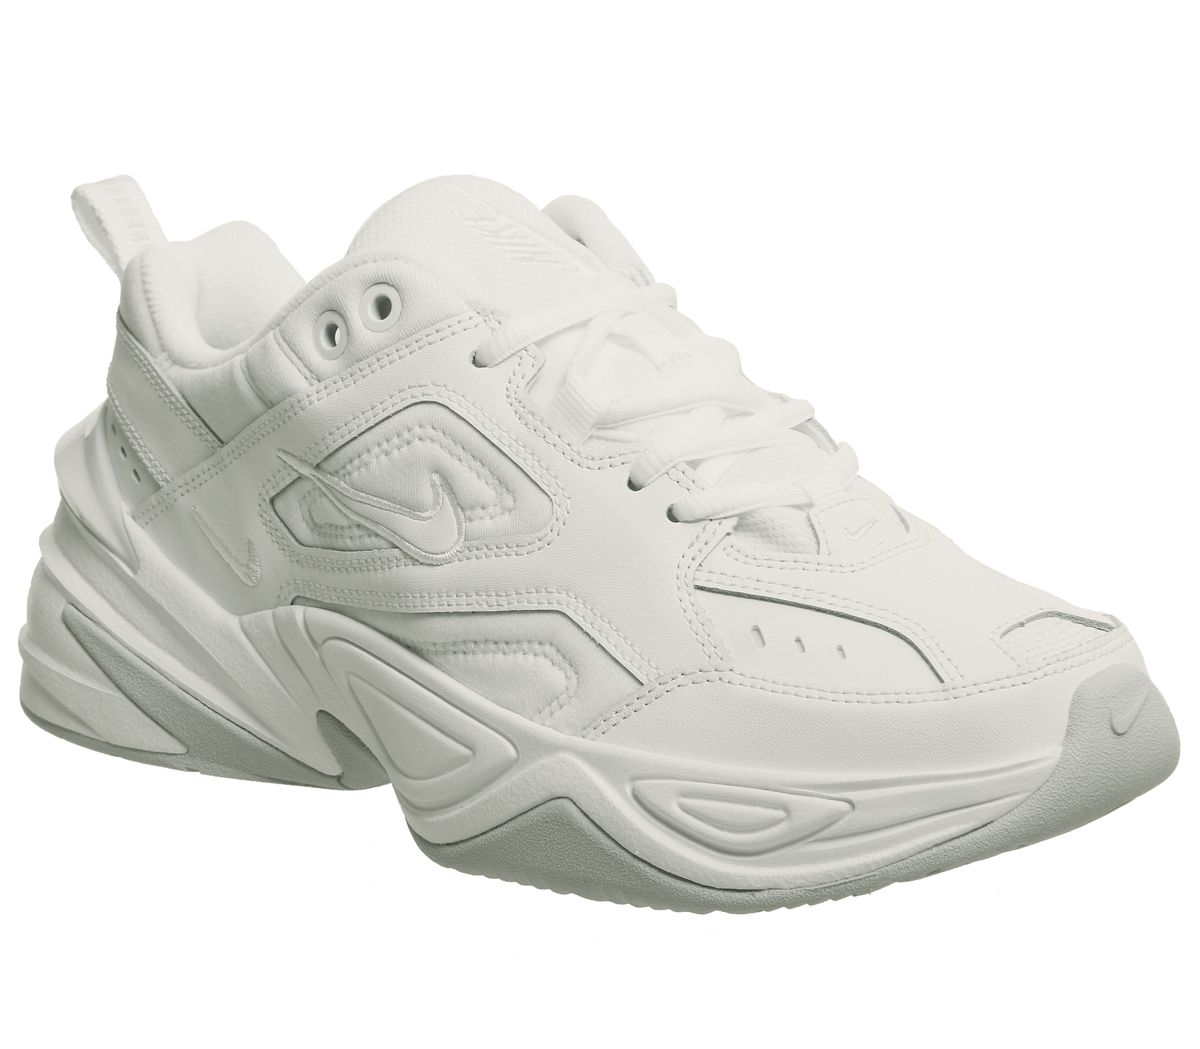 buy popular ad06c 18131 Nike M2k Tekno Trainers White Pure Platinum F - Hers trainers